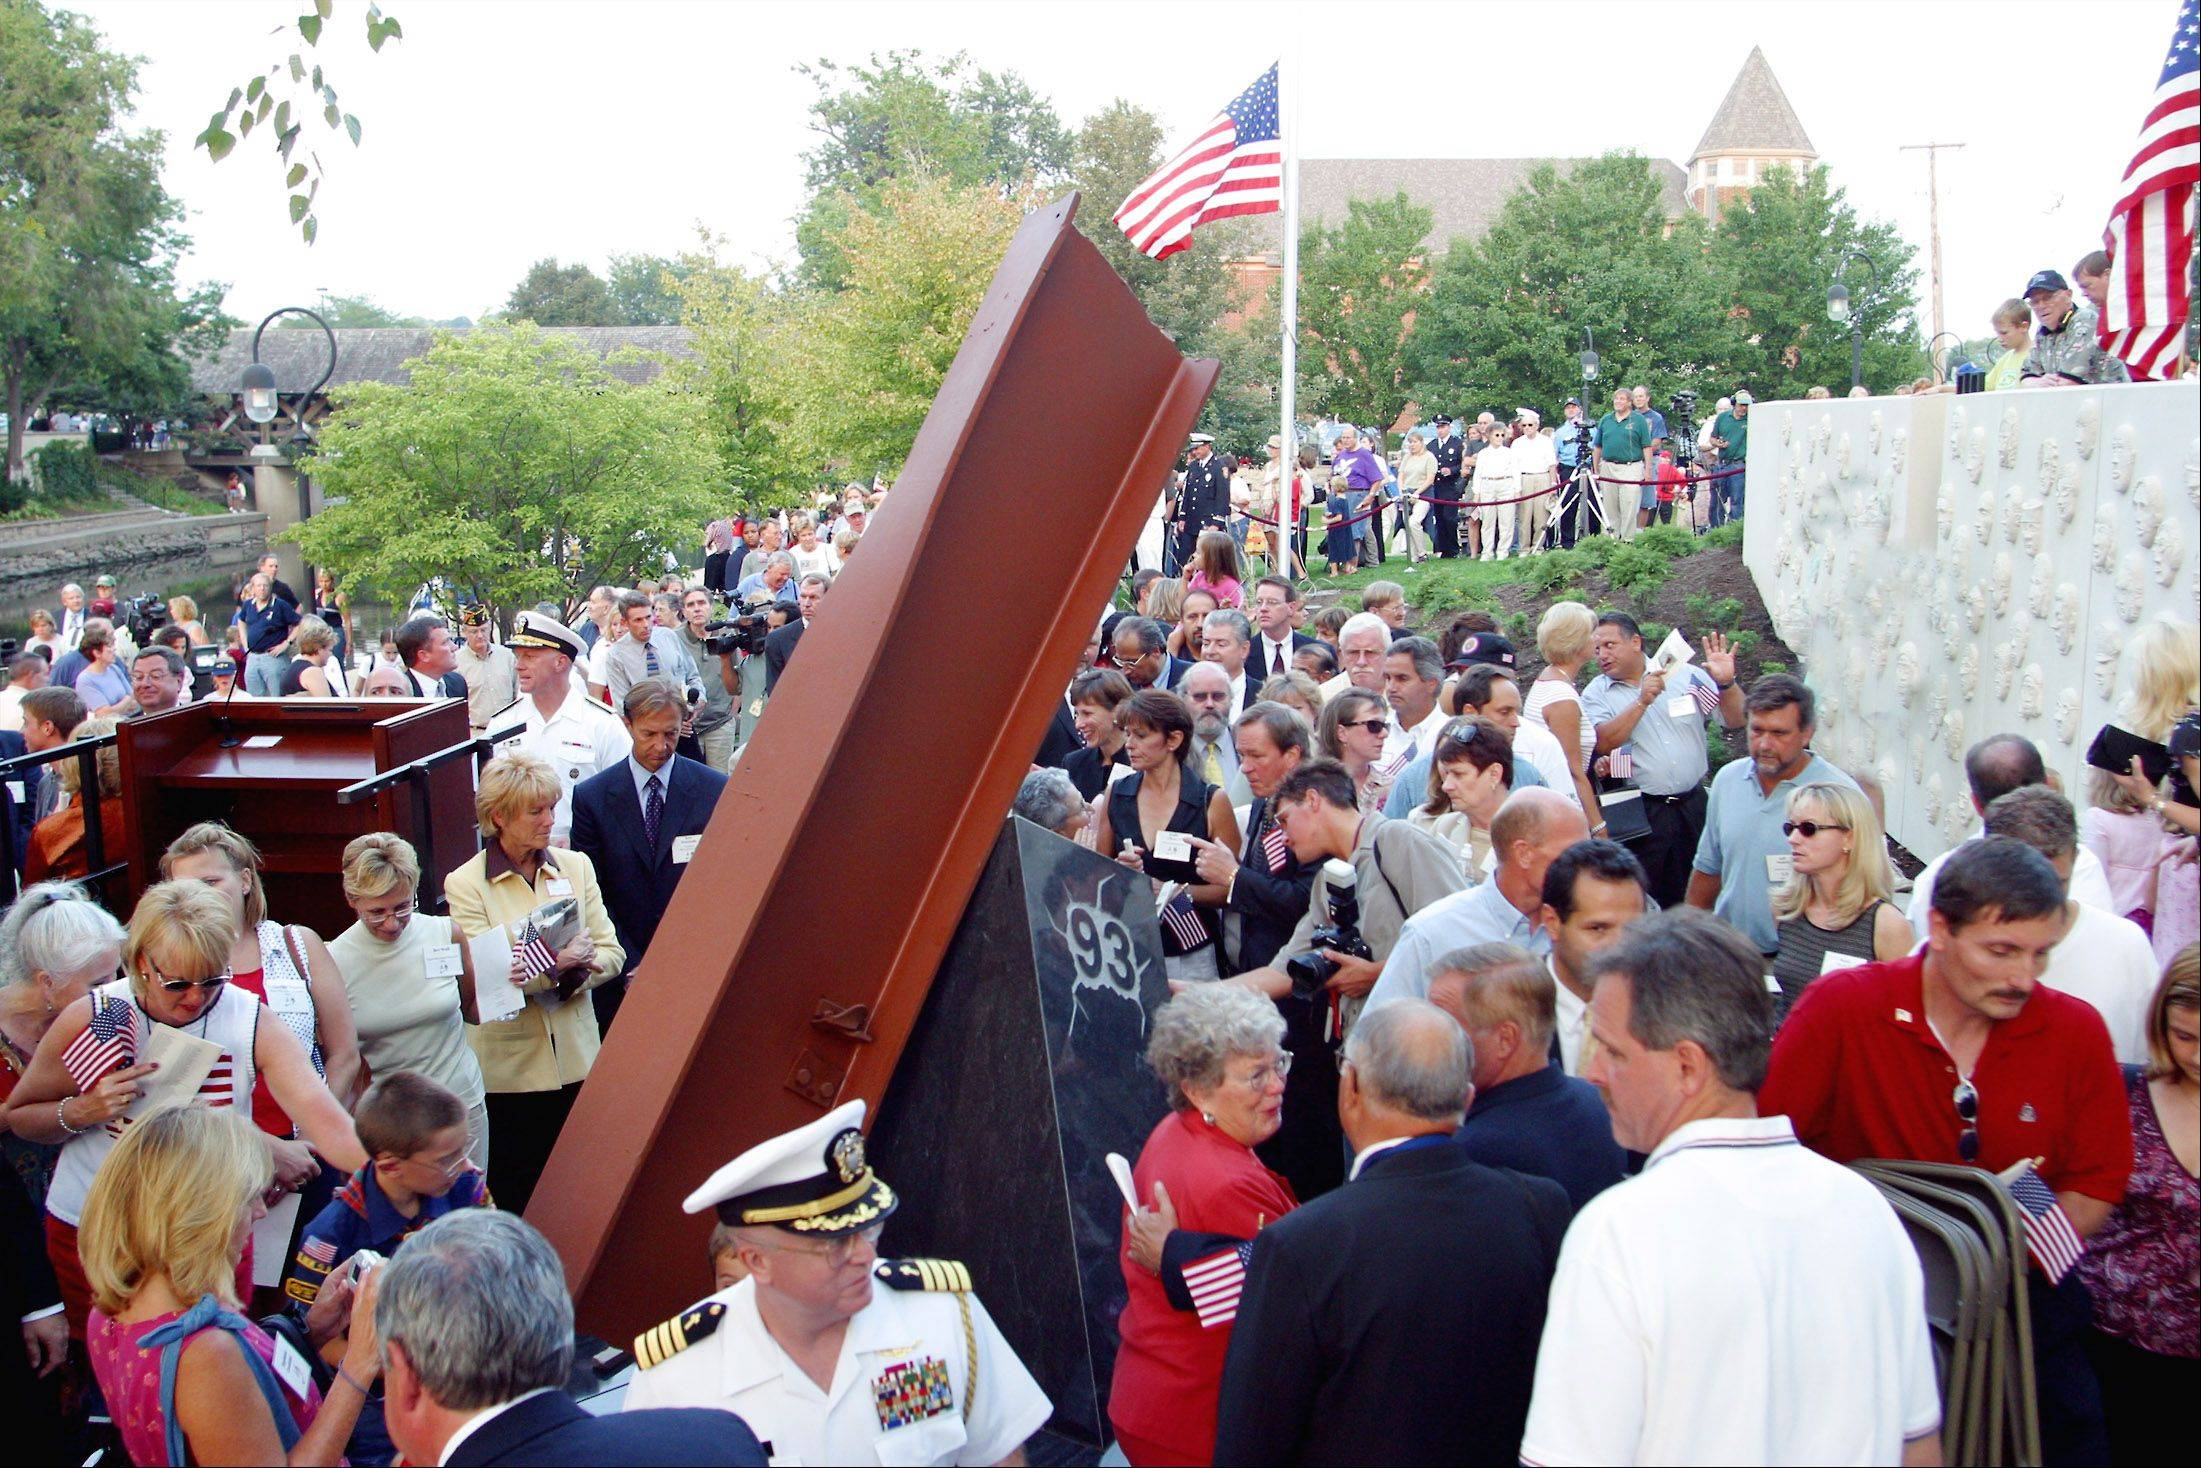 Admiral keeps promise to Shanower family, honors Sept. 11 victims